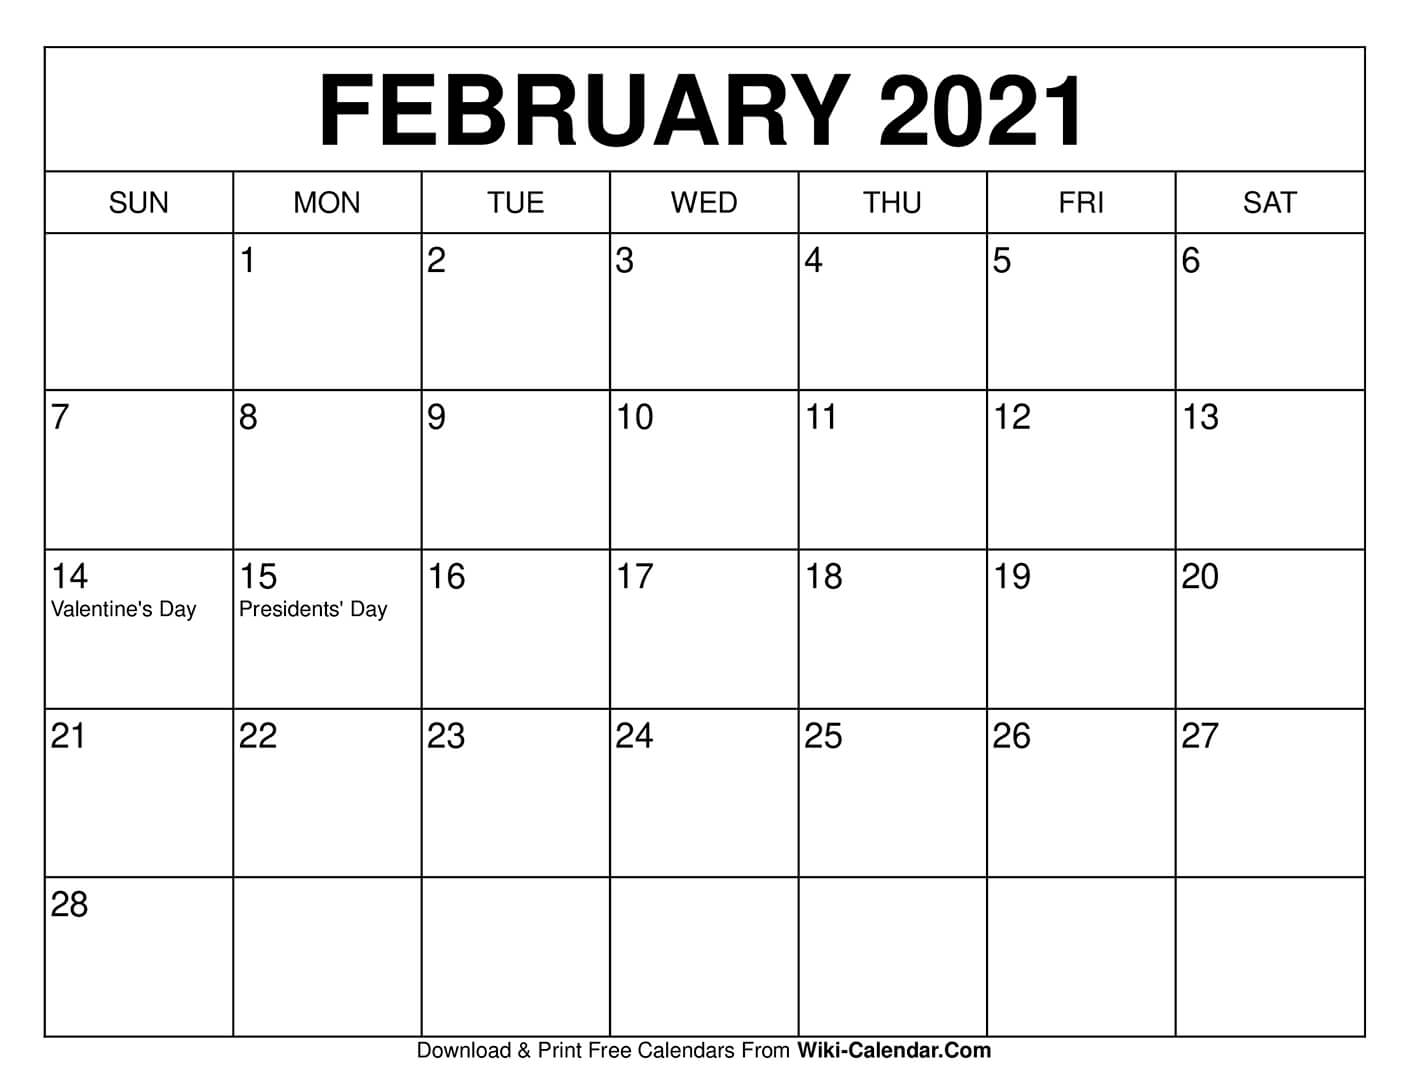 Free Printable February 2020 Calendars pertaining to Print Free 2020 Calendar Without Downloading Weekly Writing